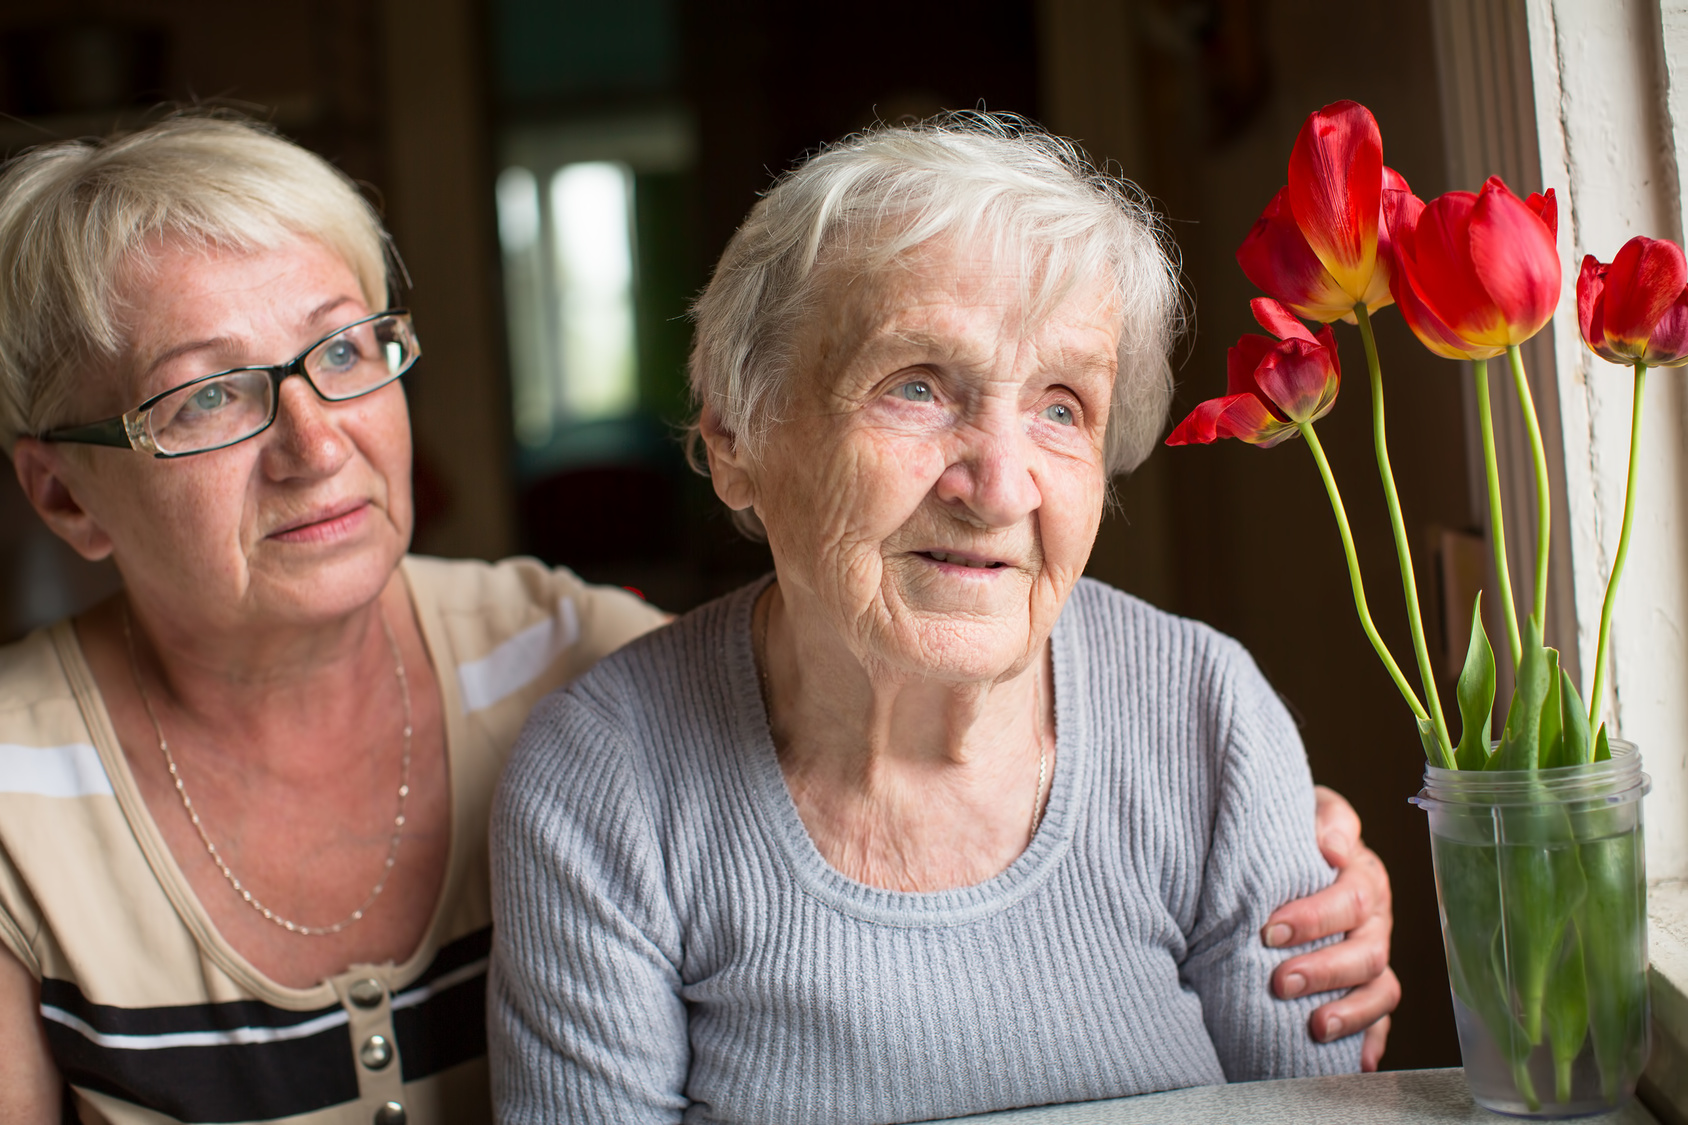 Choosing a Long-Term Care Community for Your Loved One? Here's What to Ask